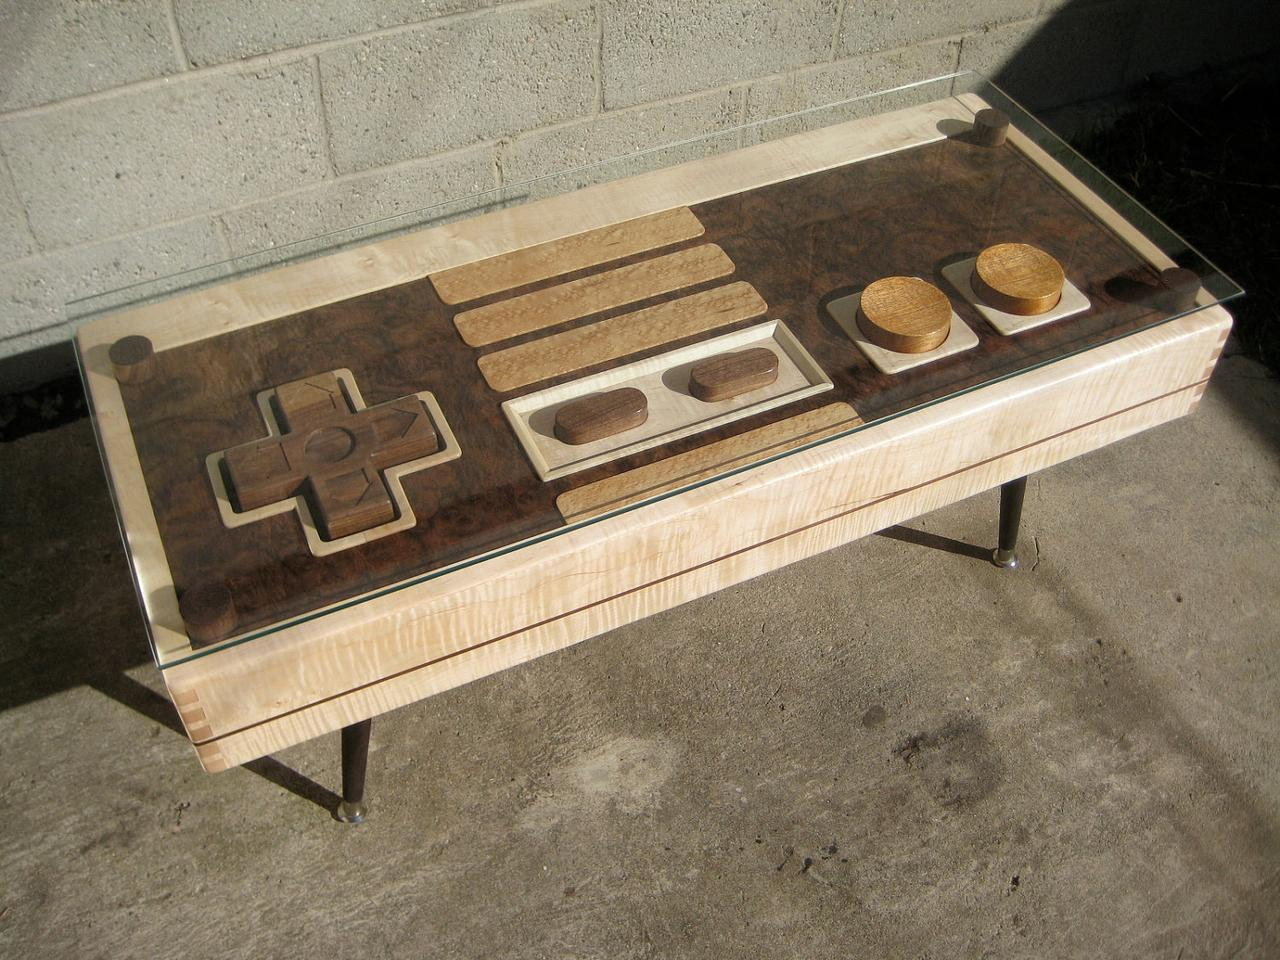 When not being used to control the onscreen action of favored NES classics like Super Mario, the table's huge wooden four-way directional pad and action buttons sit underneath a removable glass top